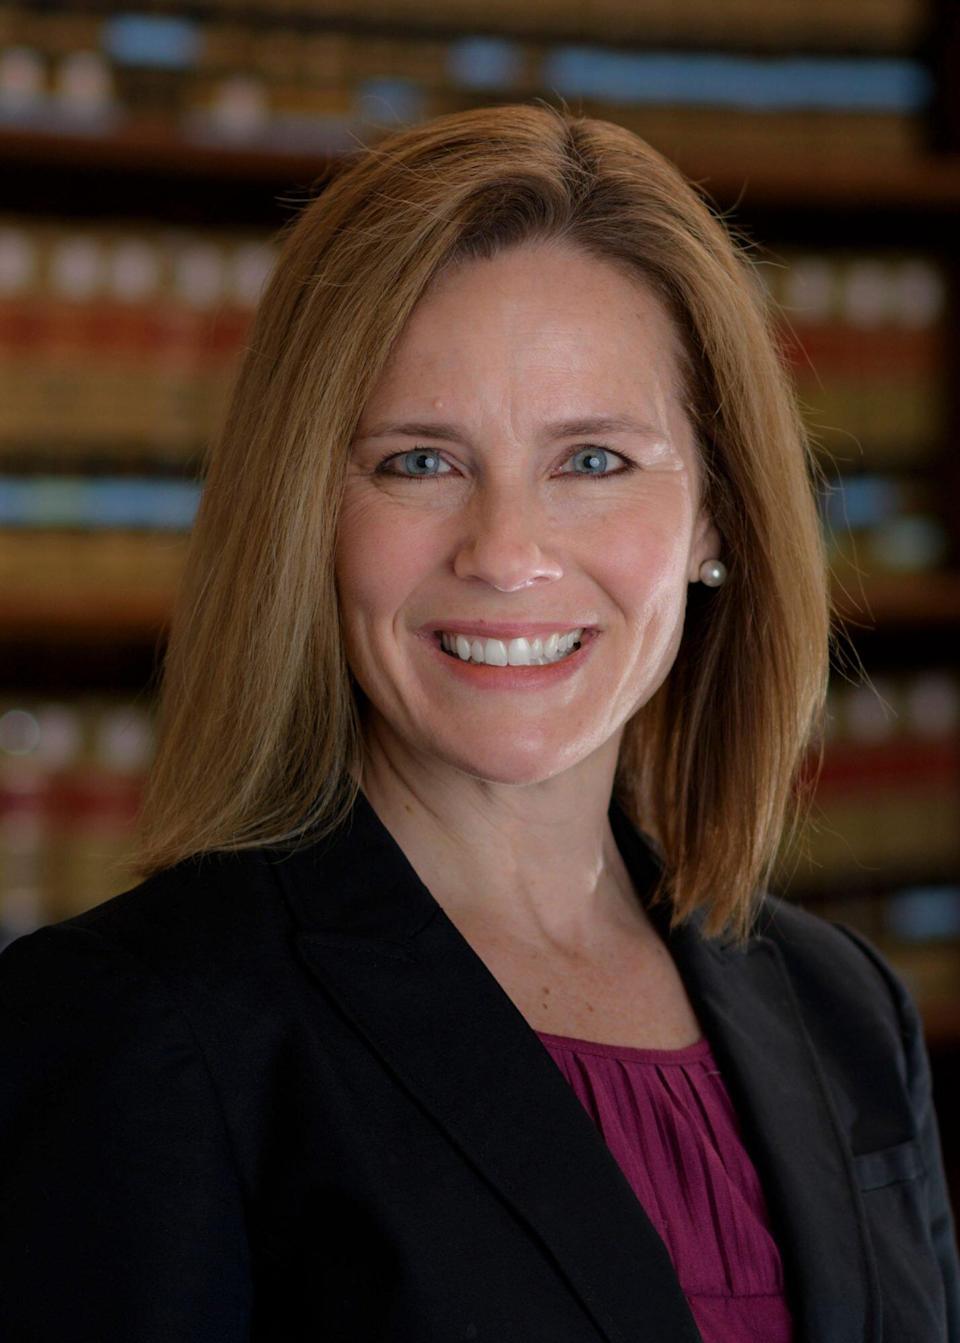 Where Amy Coney Barrett Stands on Gun Control, IVF, and Other Key Issues